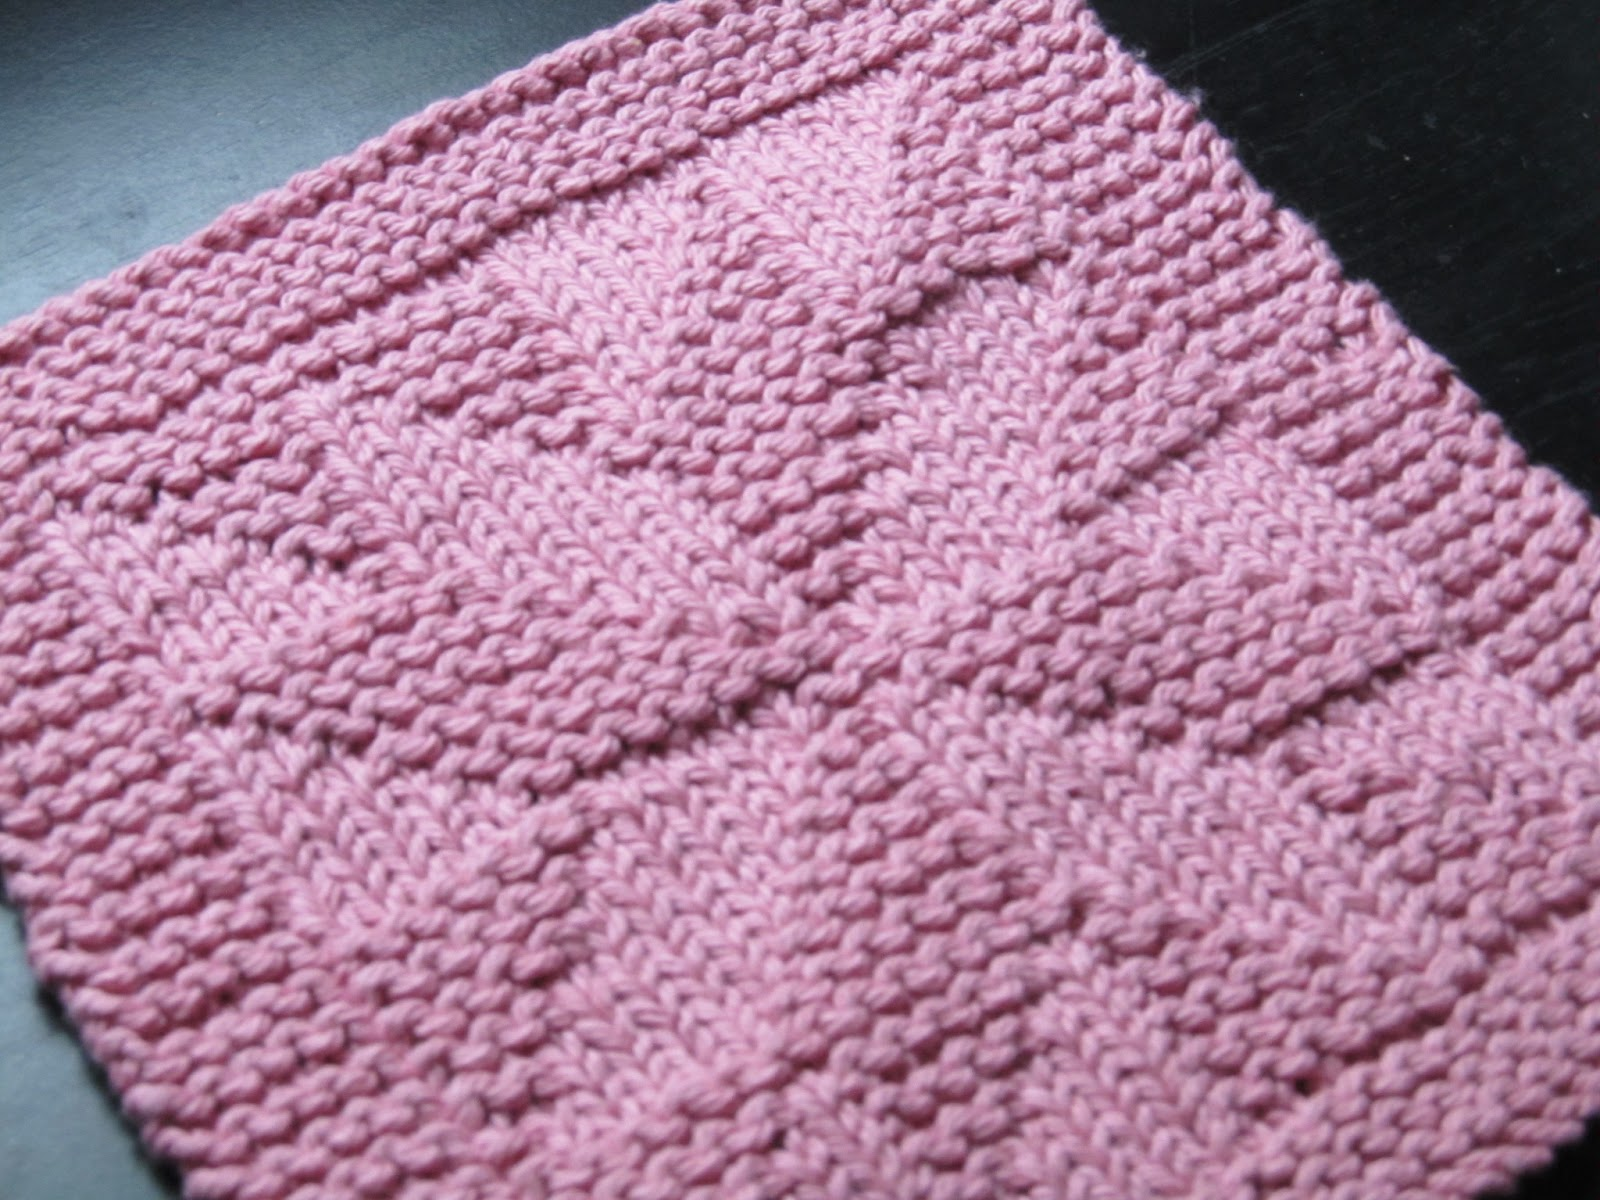 Free Knitted Dishcloth Patterns - Hot Girls Wallpaper